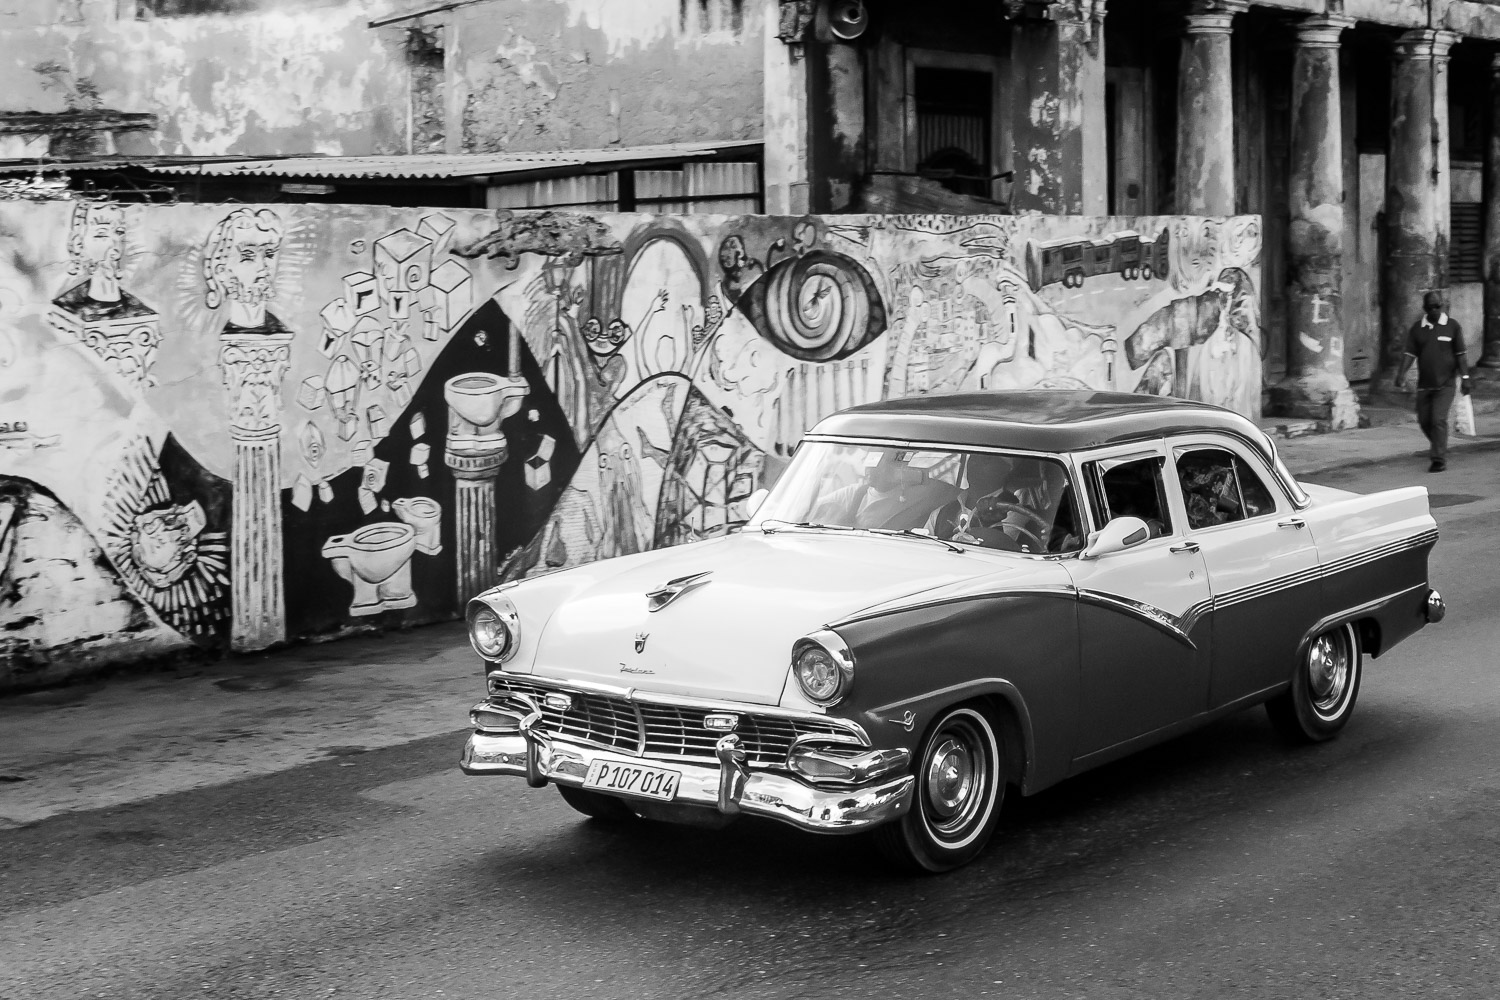 cuban cars-25-Edit.jpg